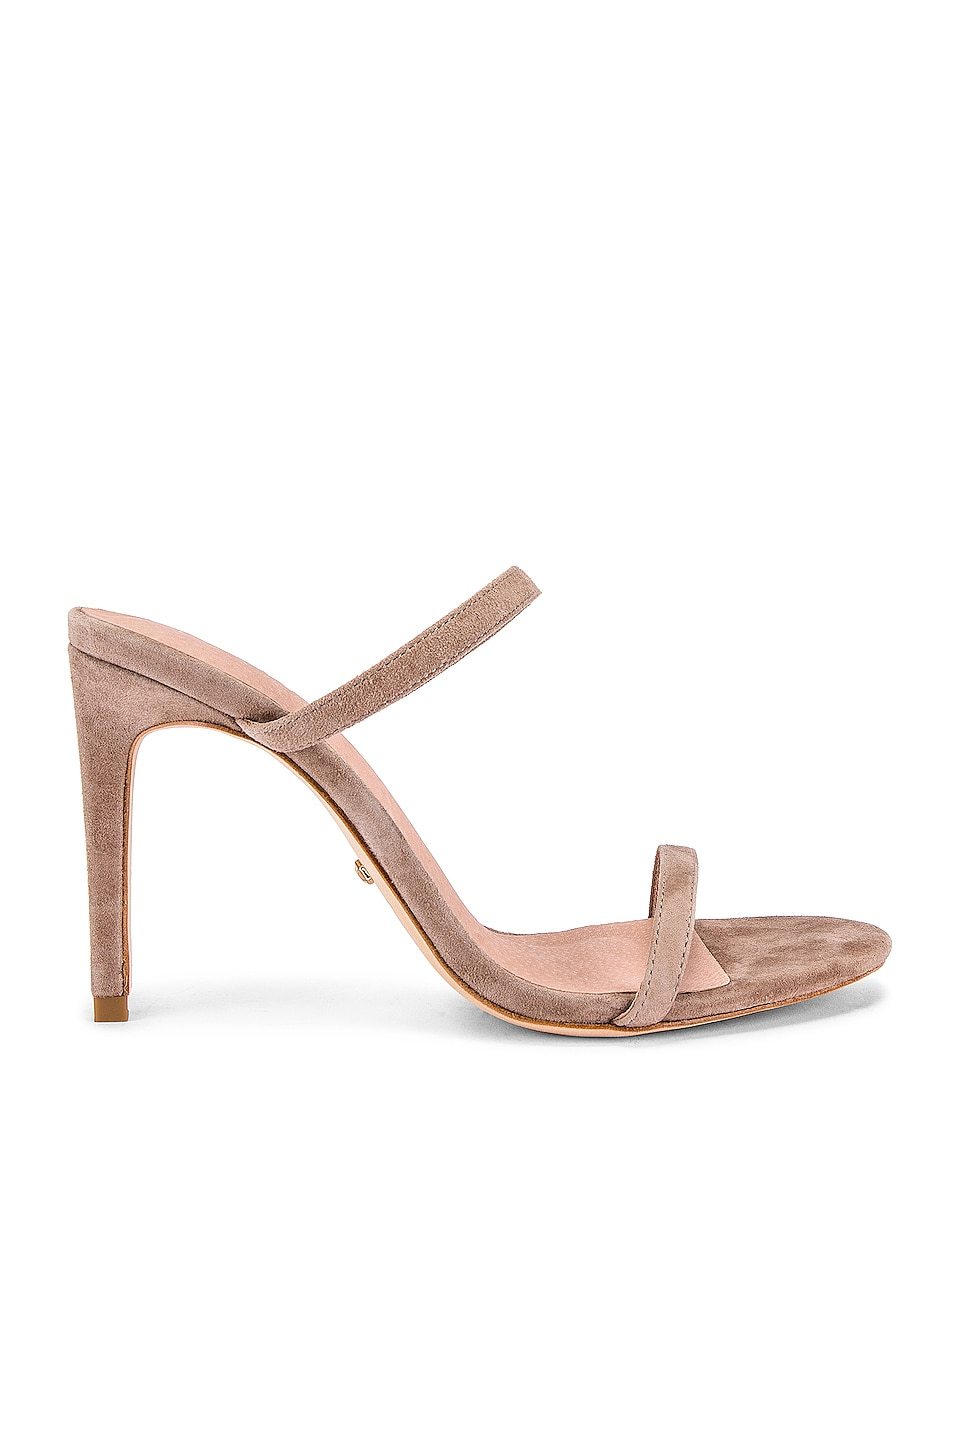 RAYE Nina Heel in Tan